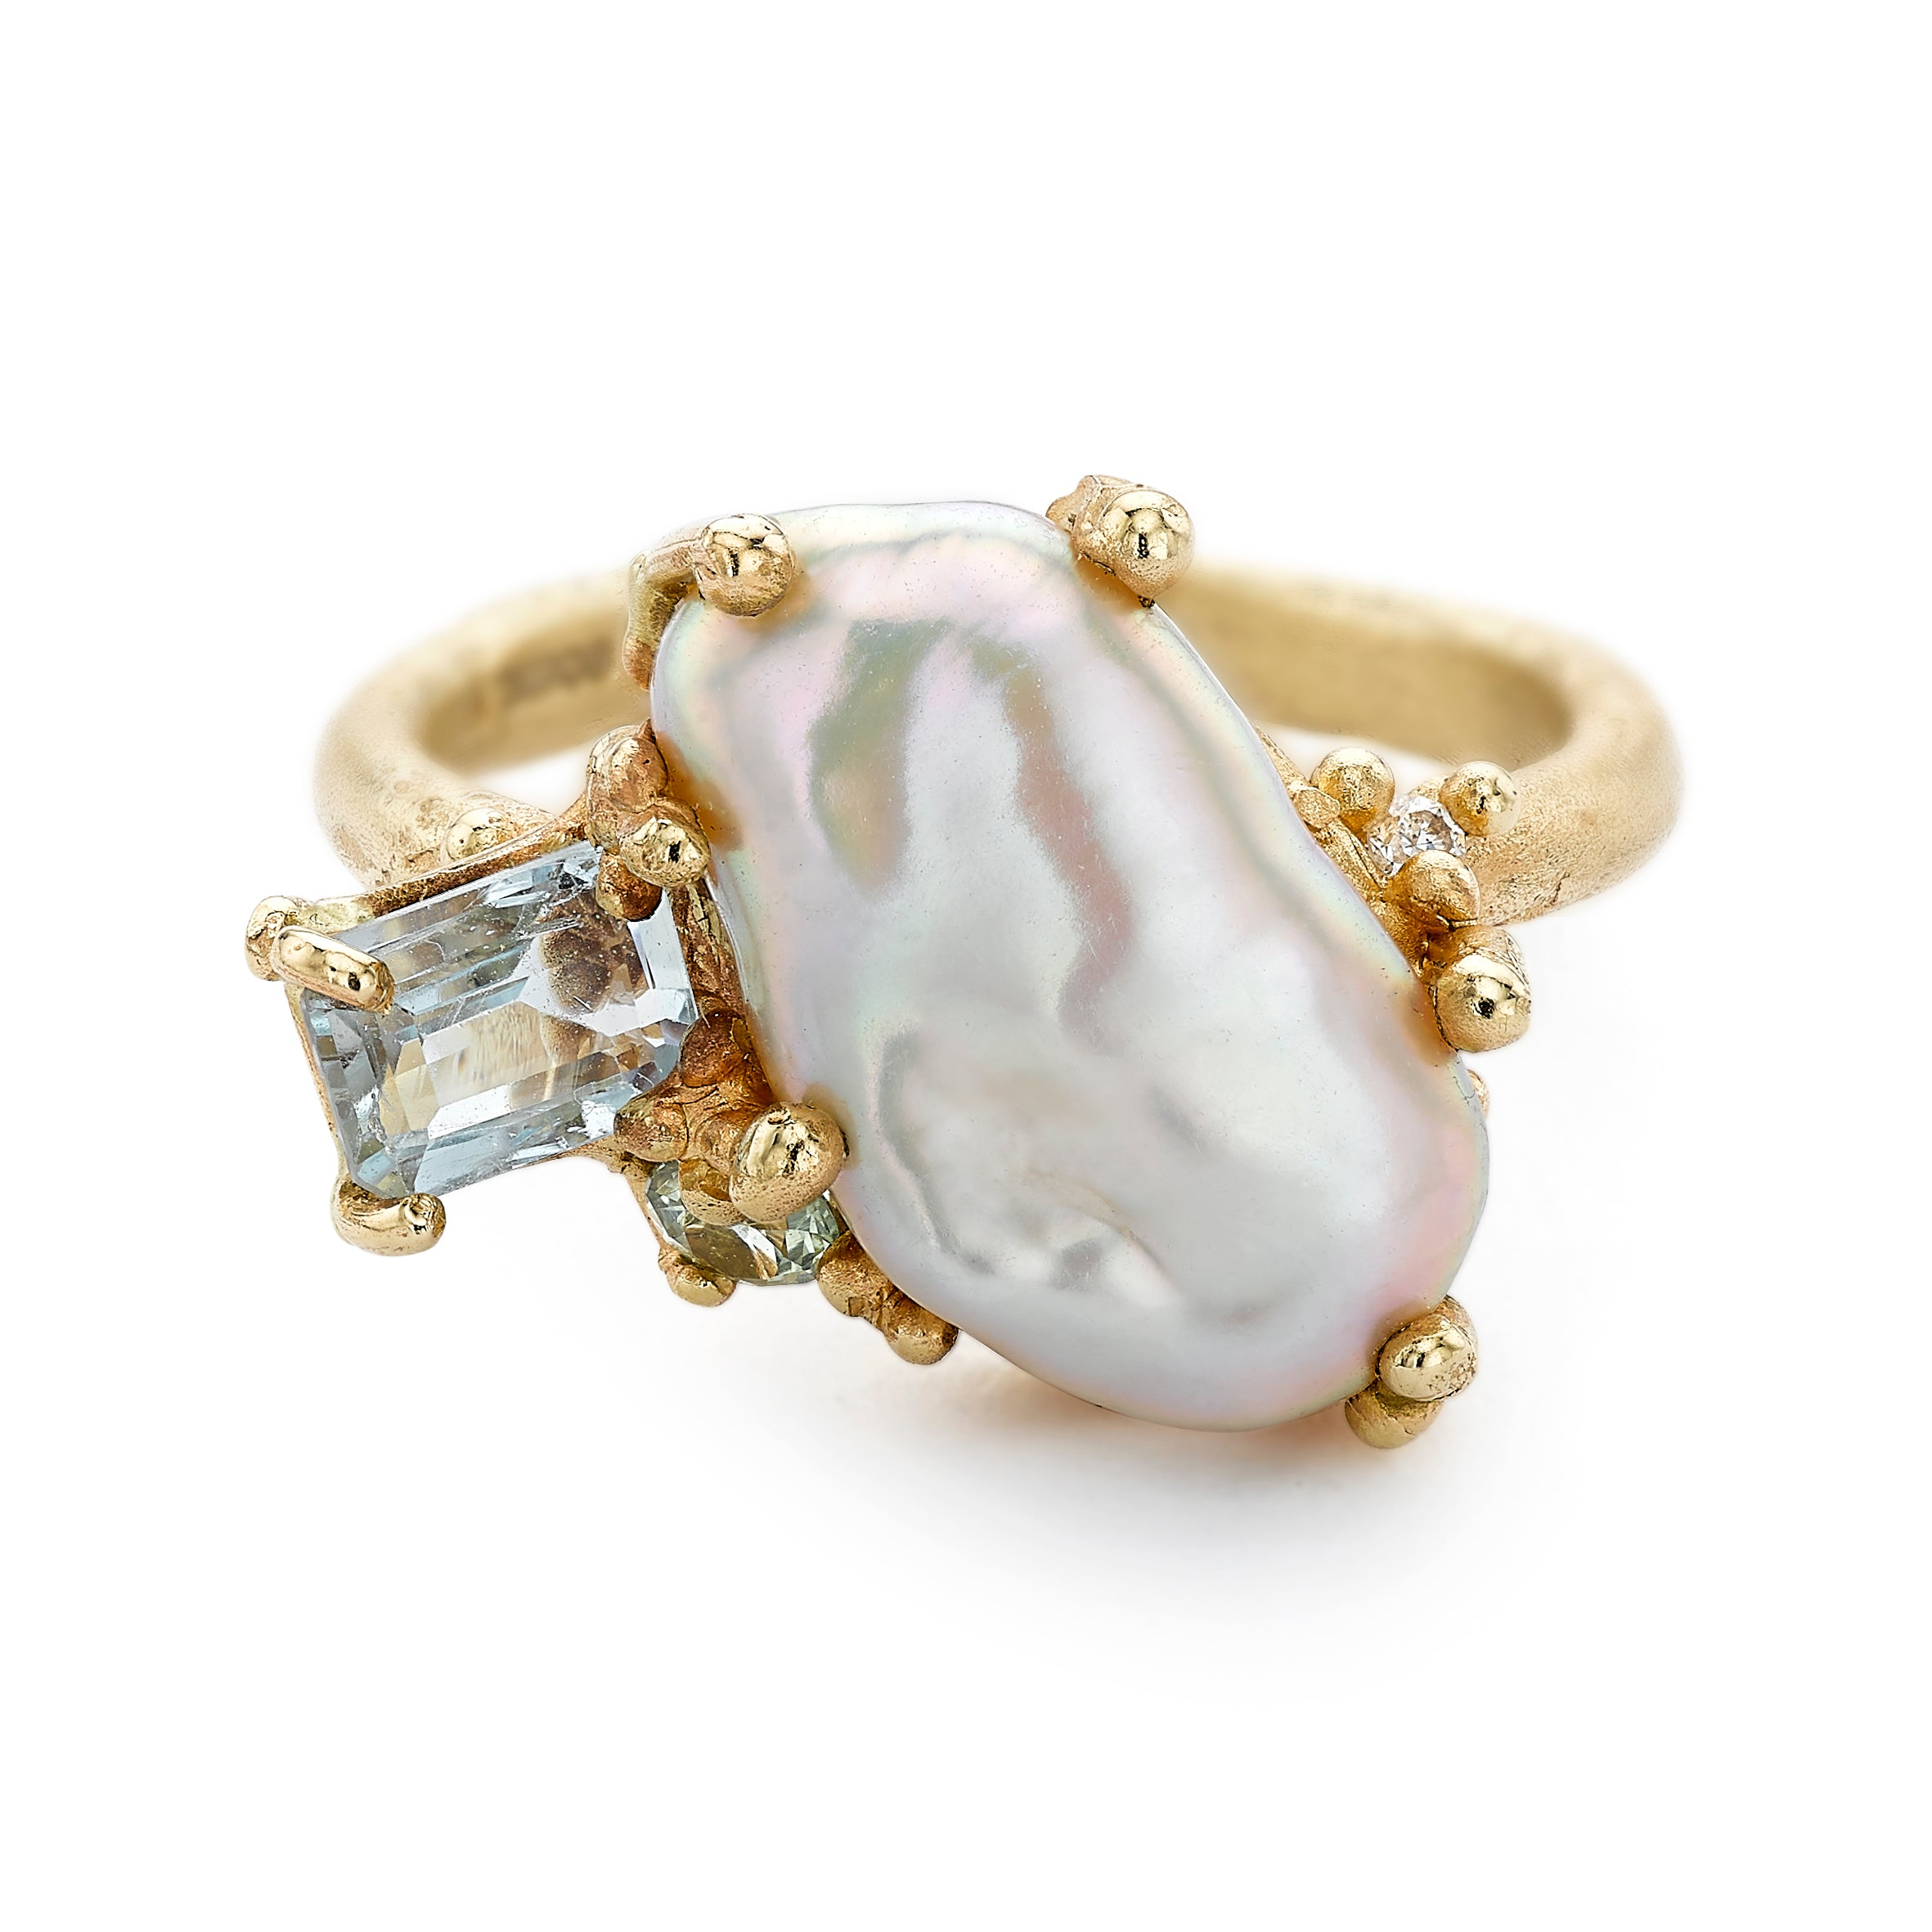 Baroque Pearl Ring with Aquamarine and Sapphire by Ruth Tomlinson, handmade in London